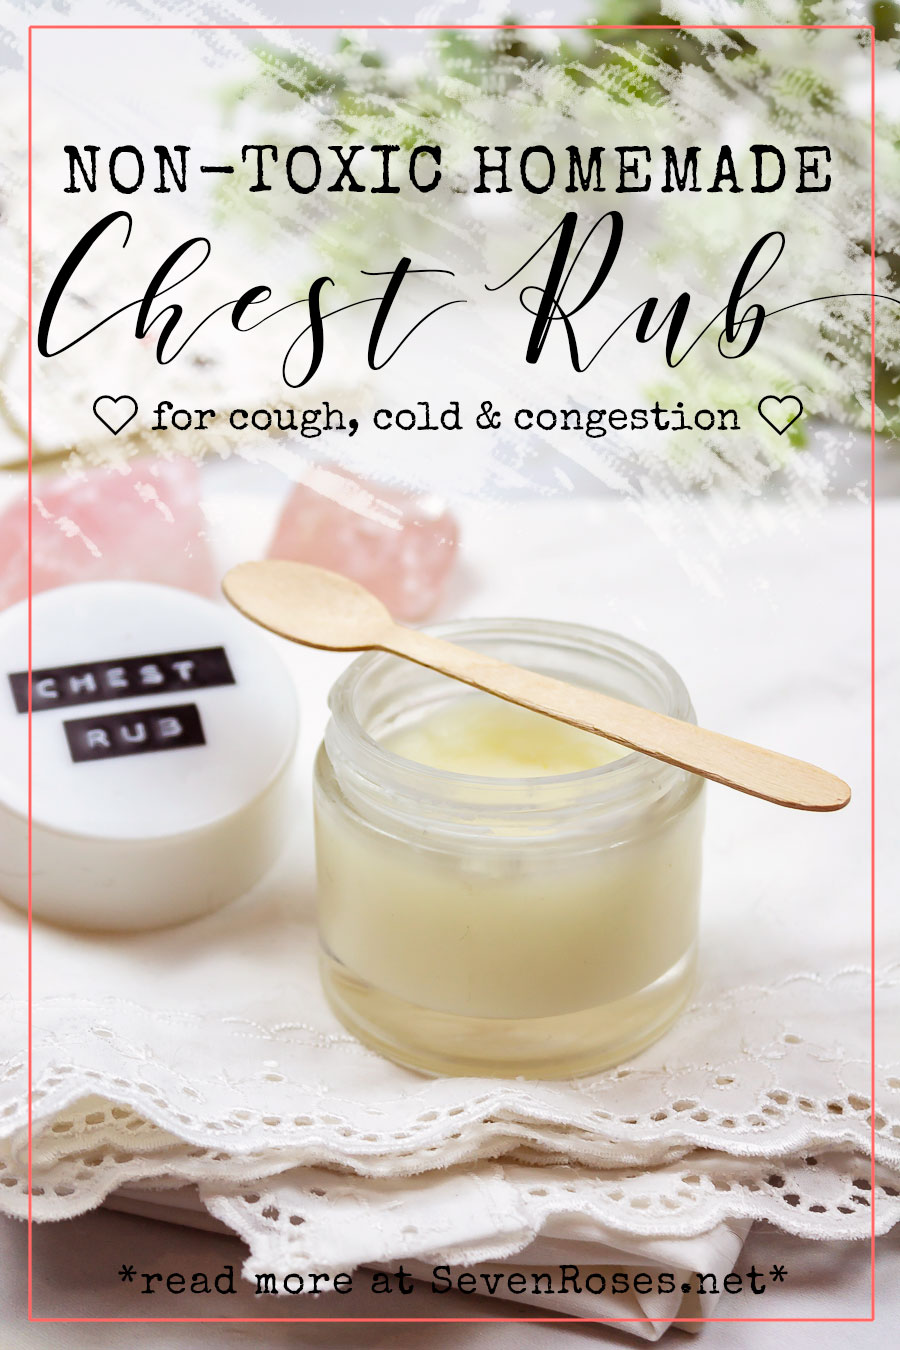 DIY: Non-toxic, Vegan Homemade chest rub for cough, cold & congestion